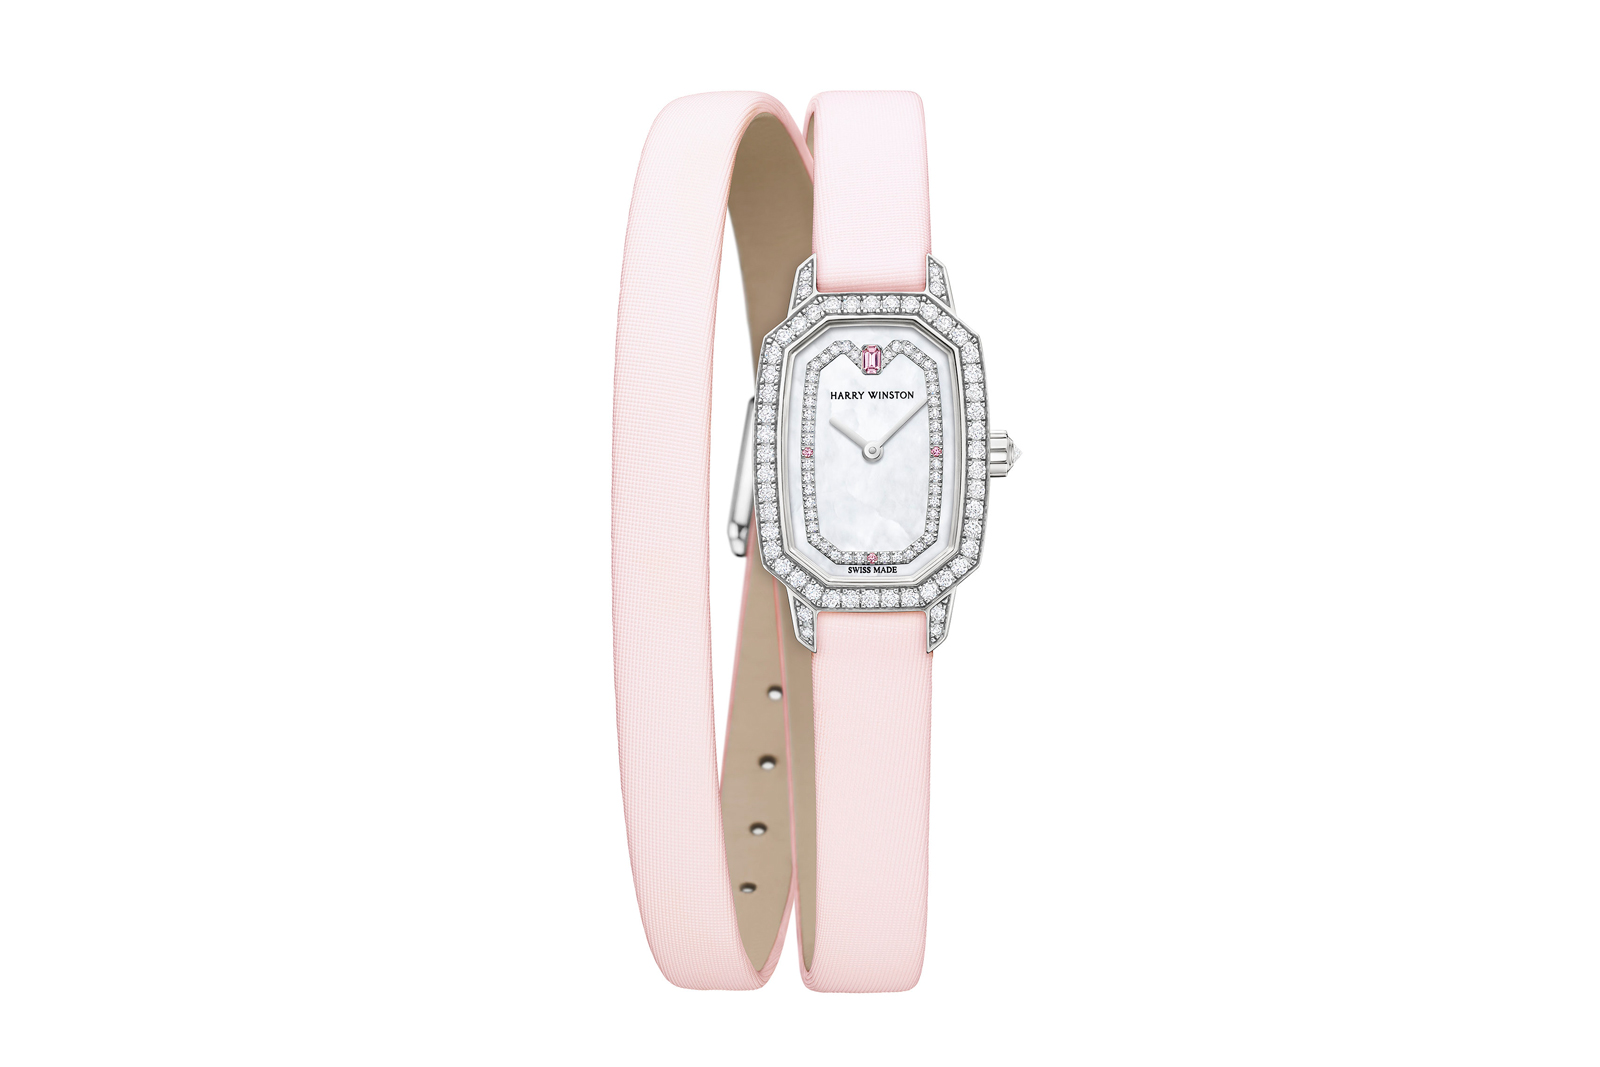 Harry Winston 'Emerald' watch with diamonds, pink sapphires and a mother of pearl dial